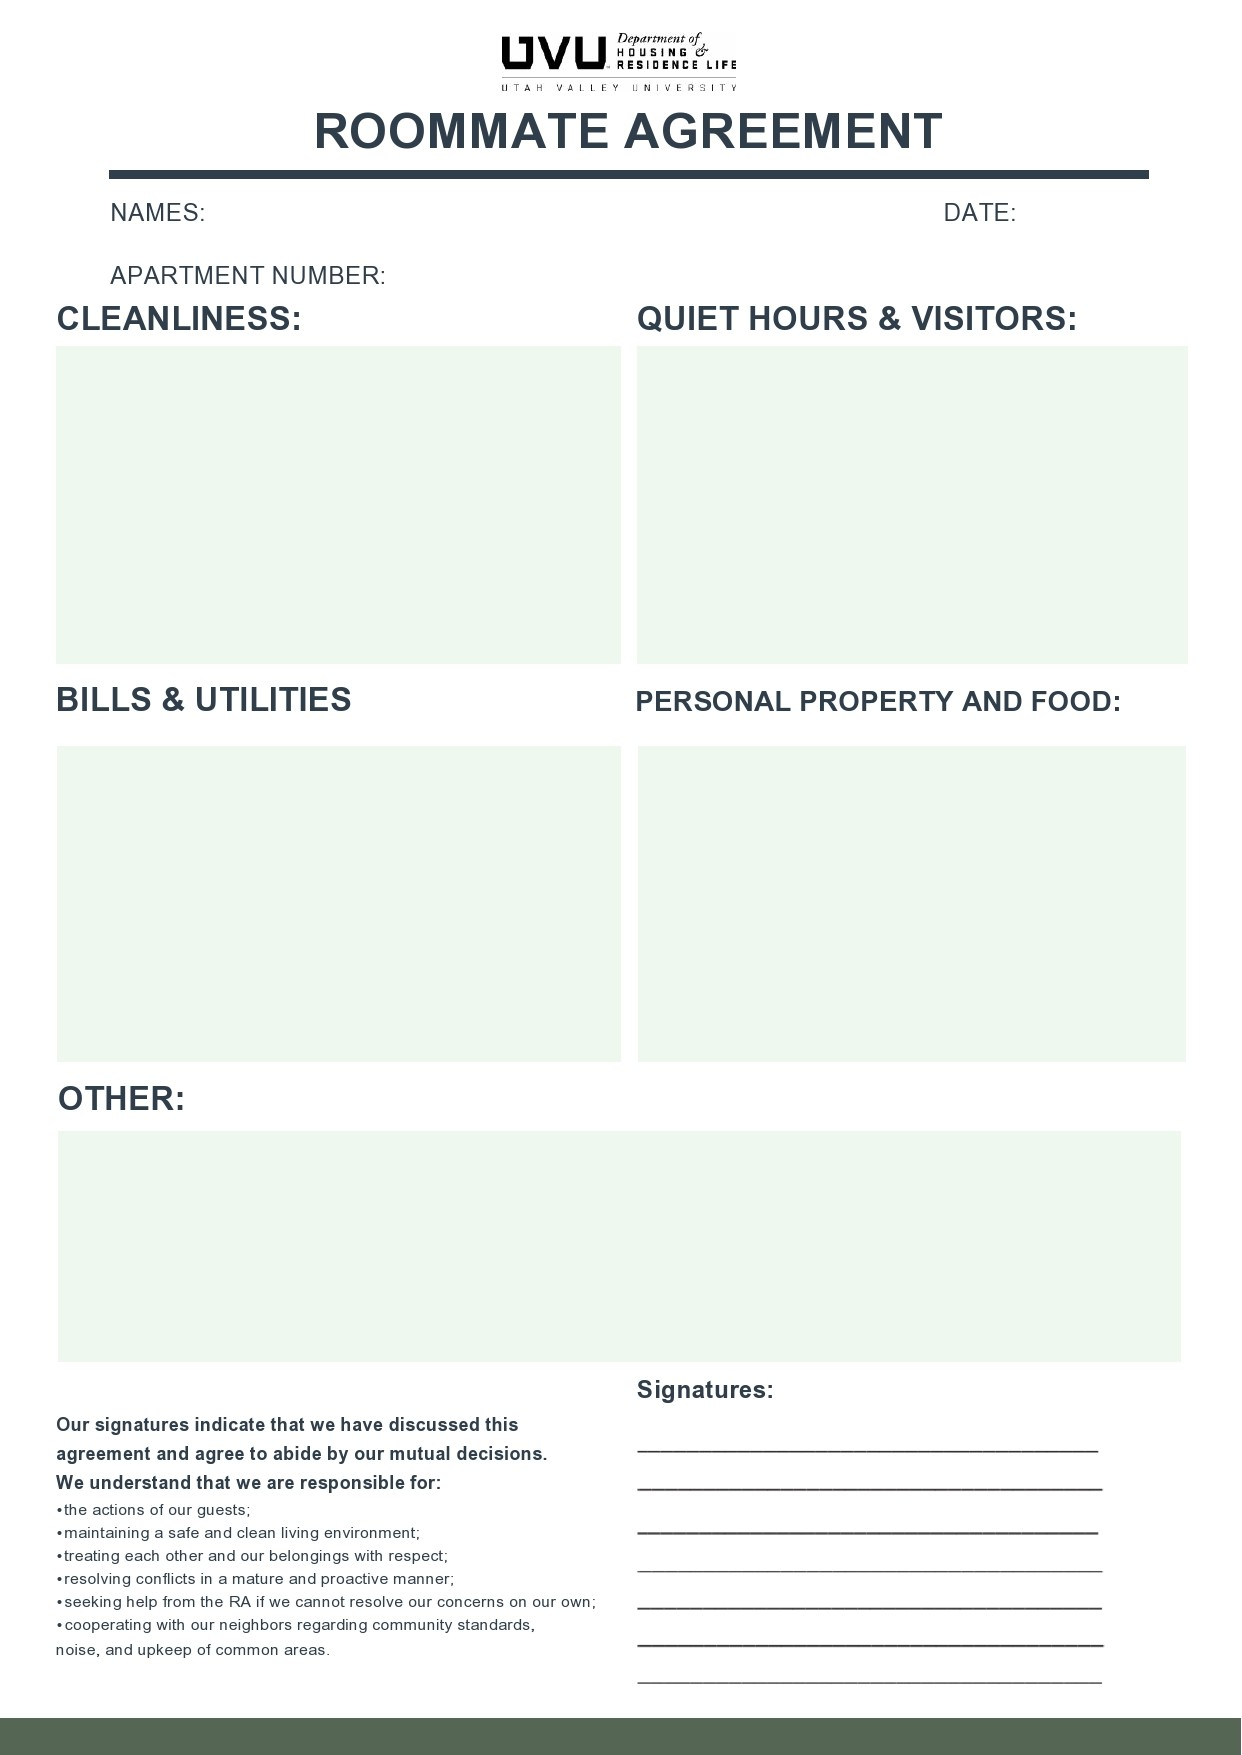 Free roommate agreement template 17